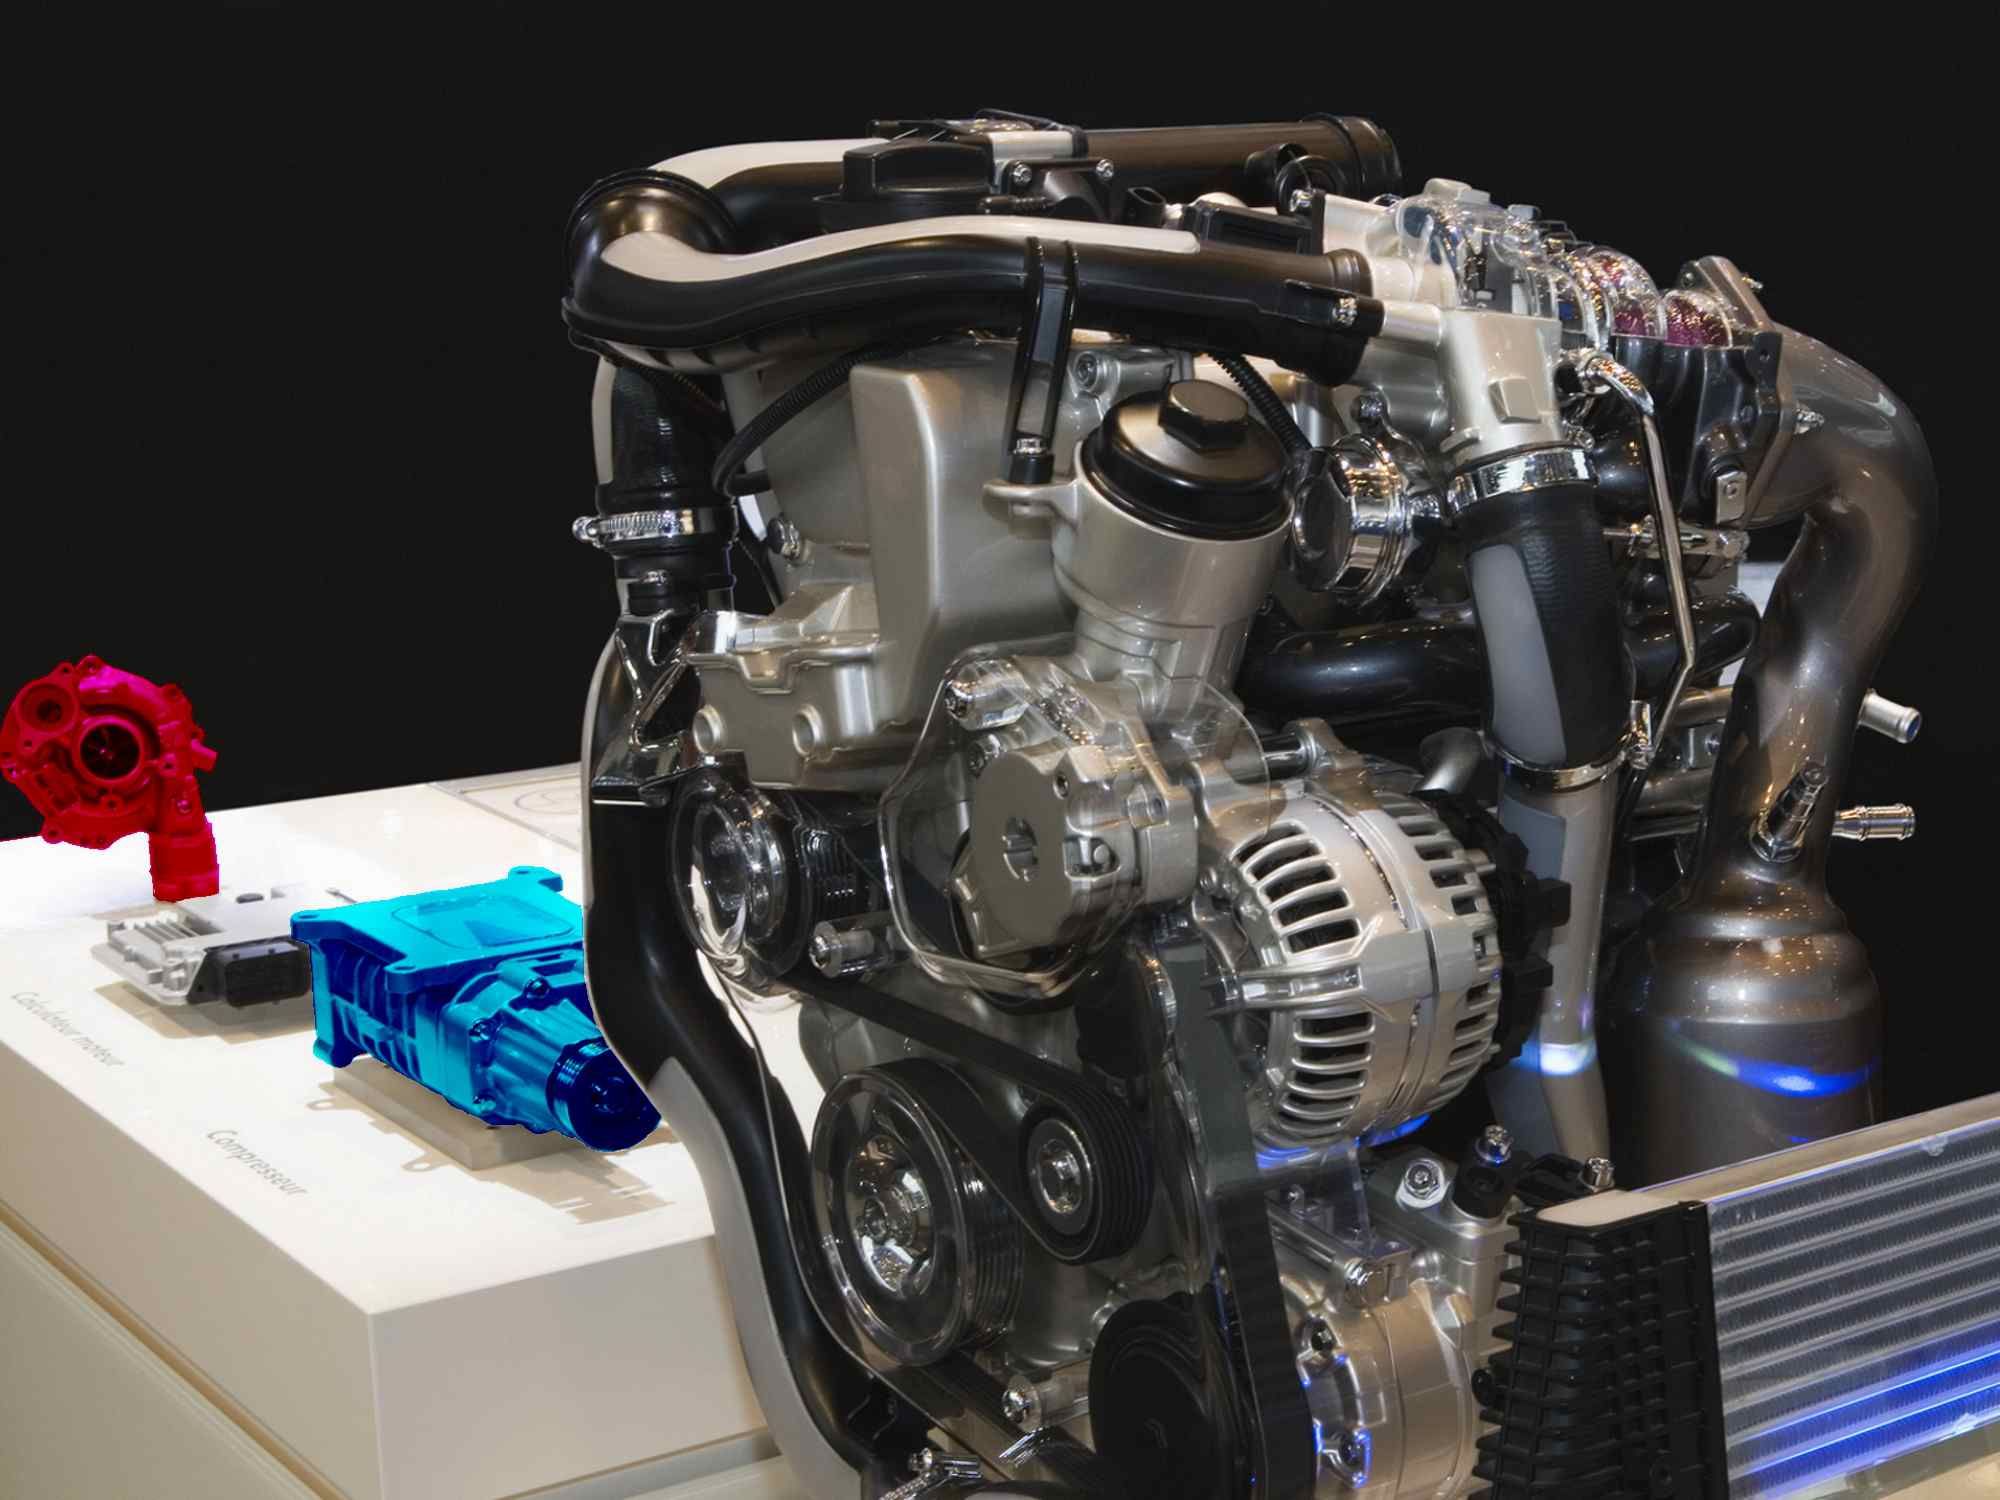 Supercharger+or+Turbocharger:+What's+the+Difference?